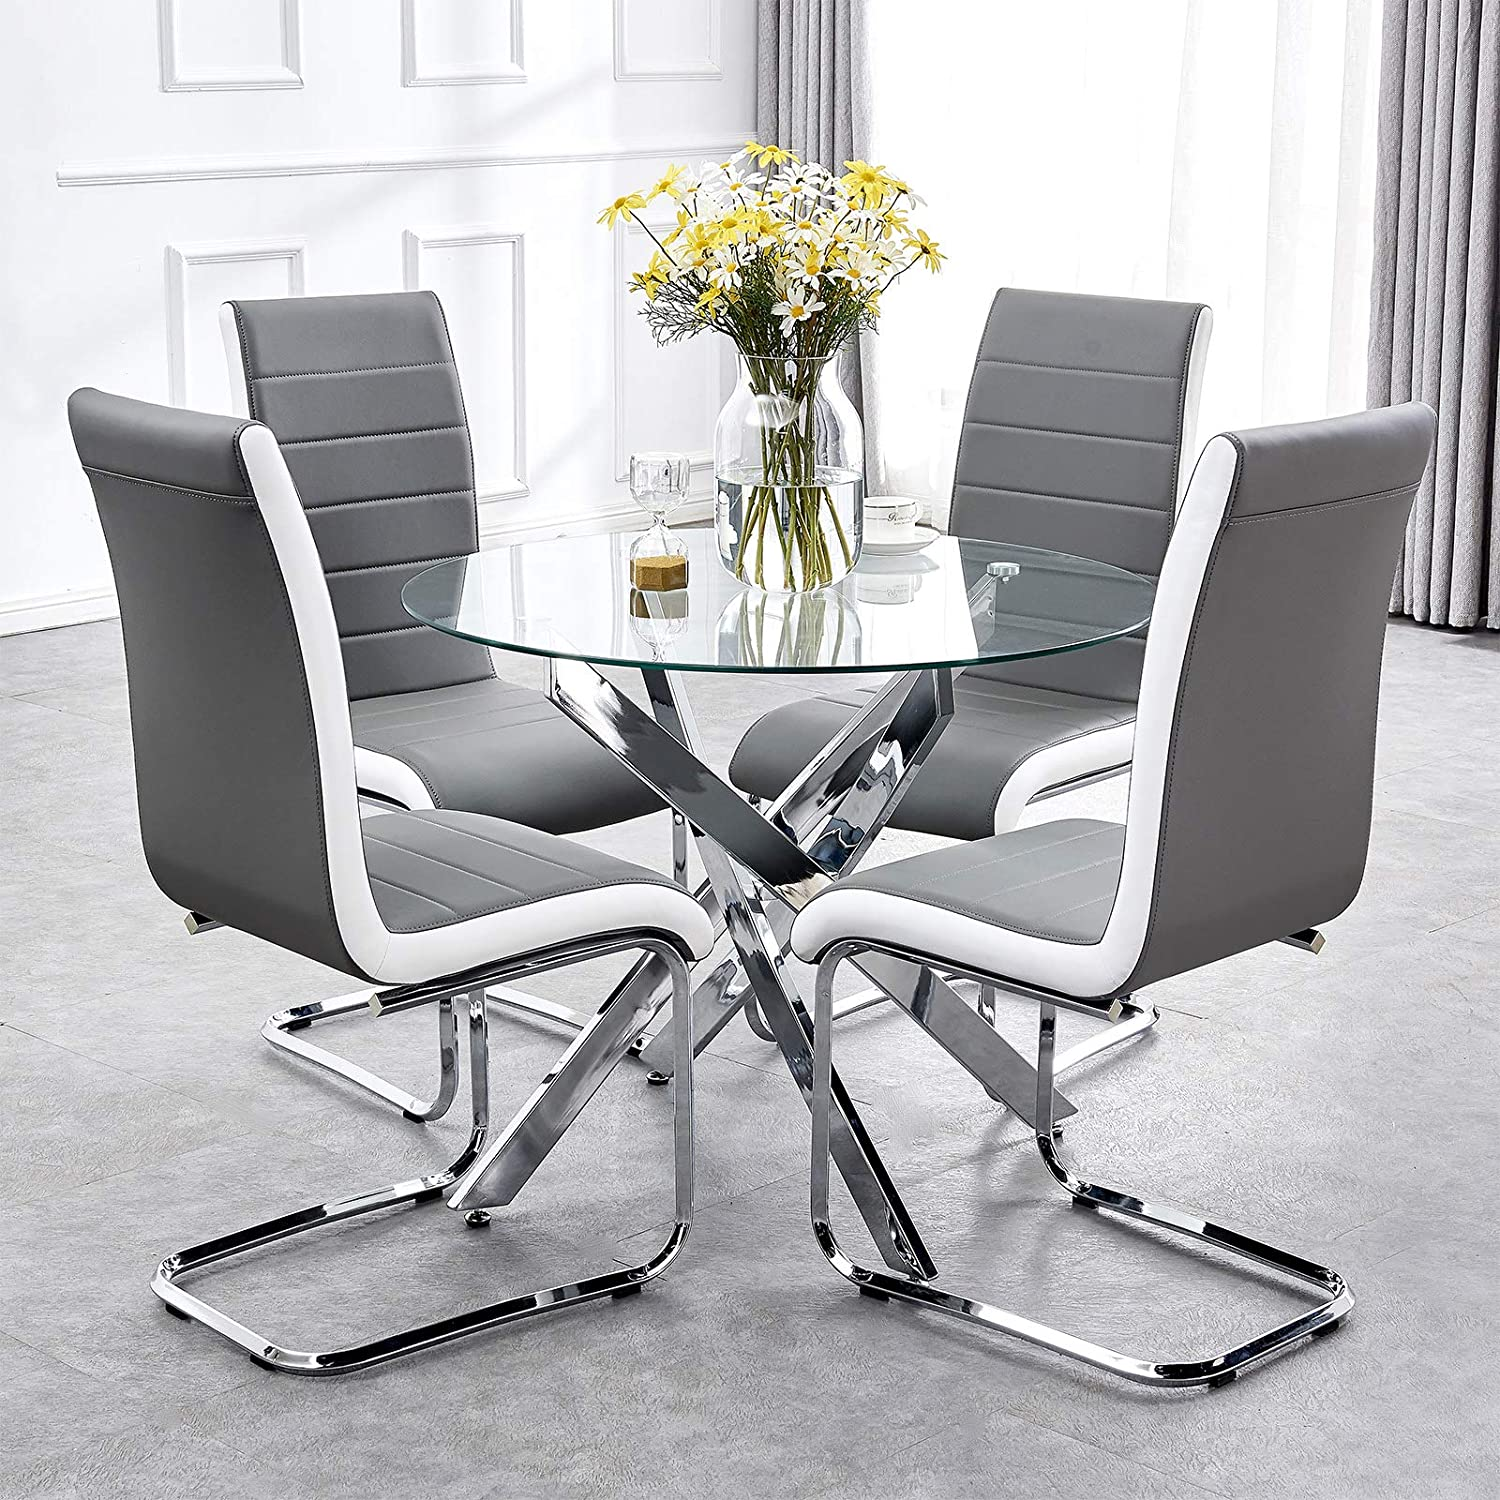 Tonvision Stylish Glass Dining Table And 4 Chairs Set Grey White Side Faux Leather High Back 90 Cm Round Clear Tempered Top Chrome Legs Sturdy Home Living Kitchen Space Saving Furniture Amazon Co Uk